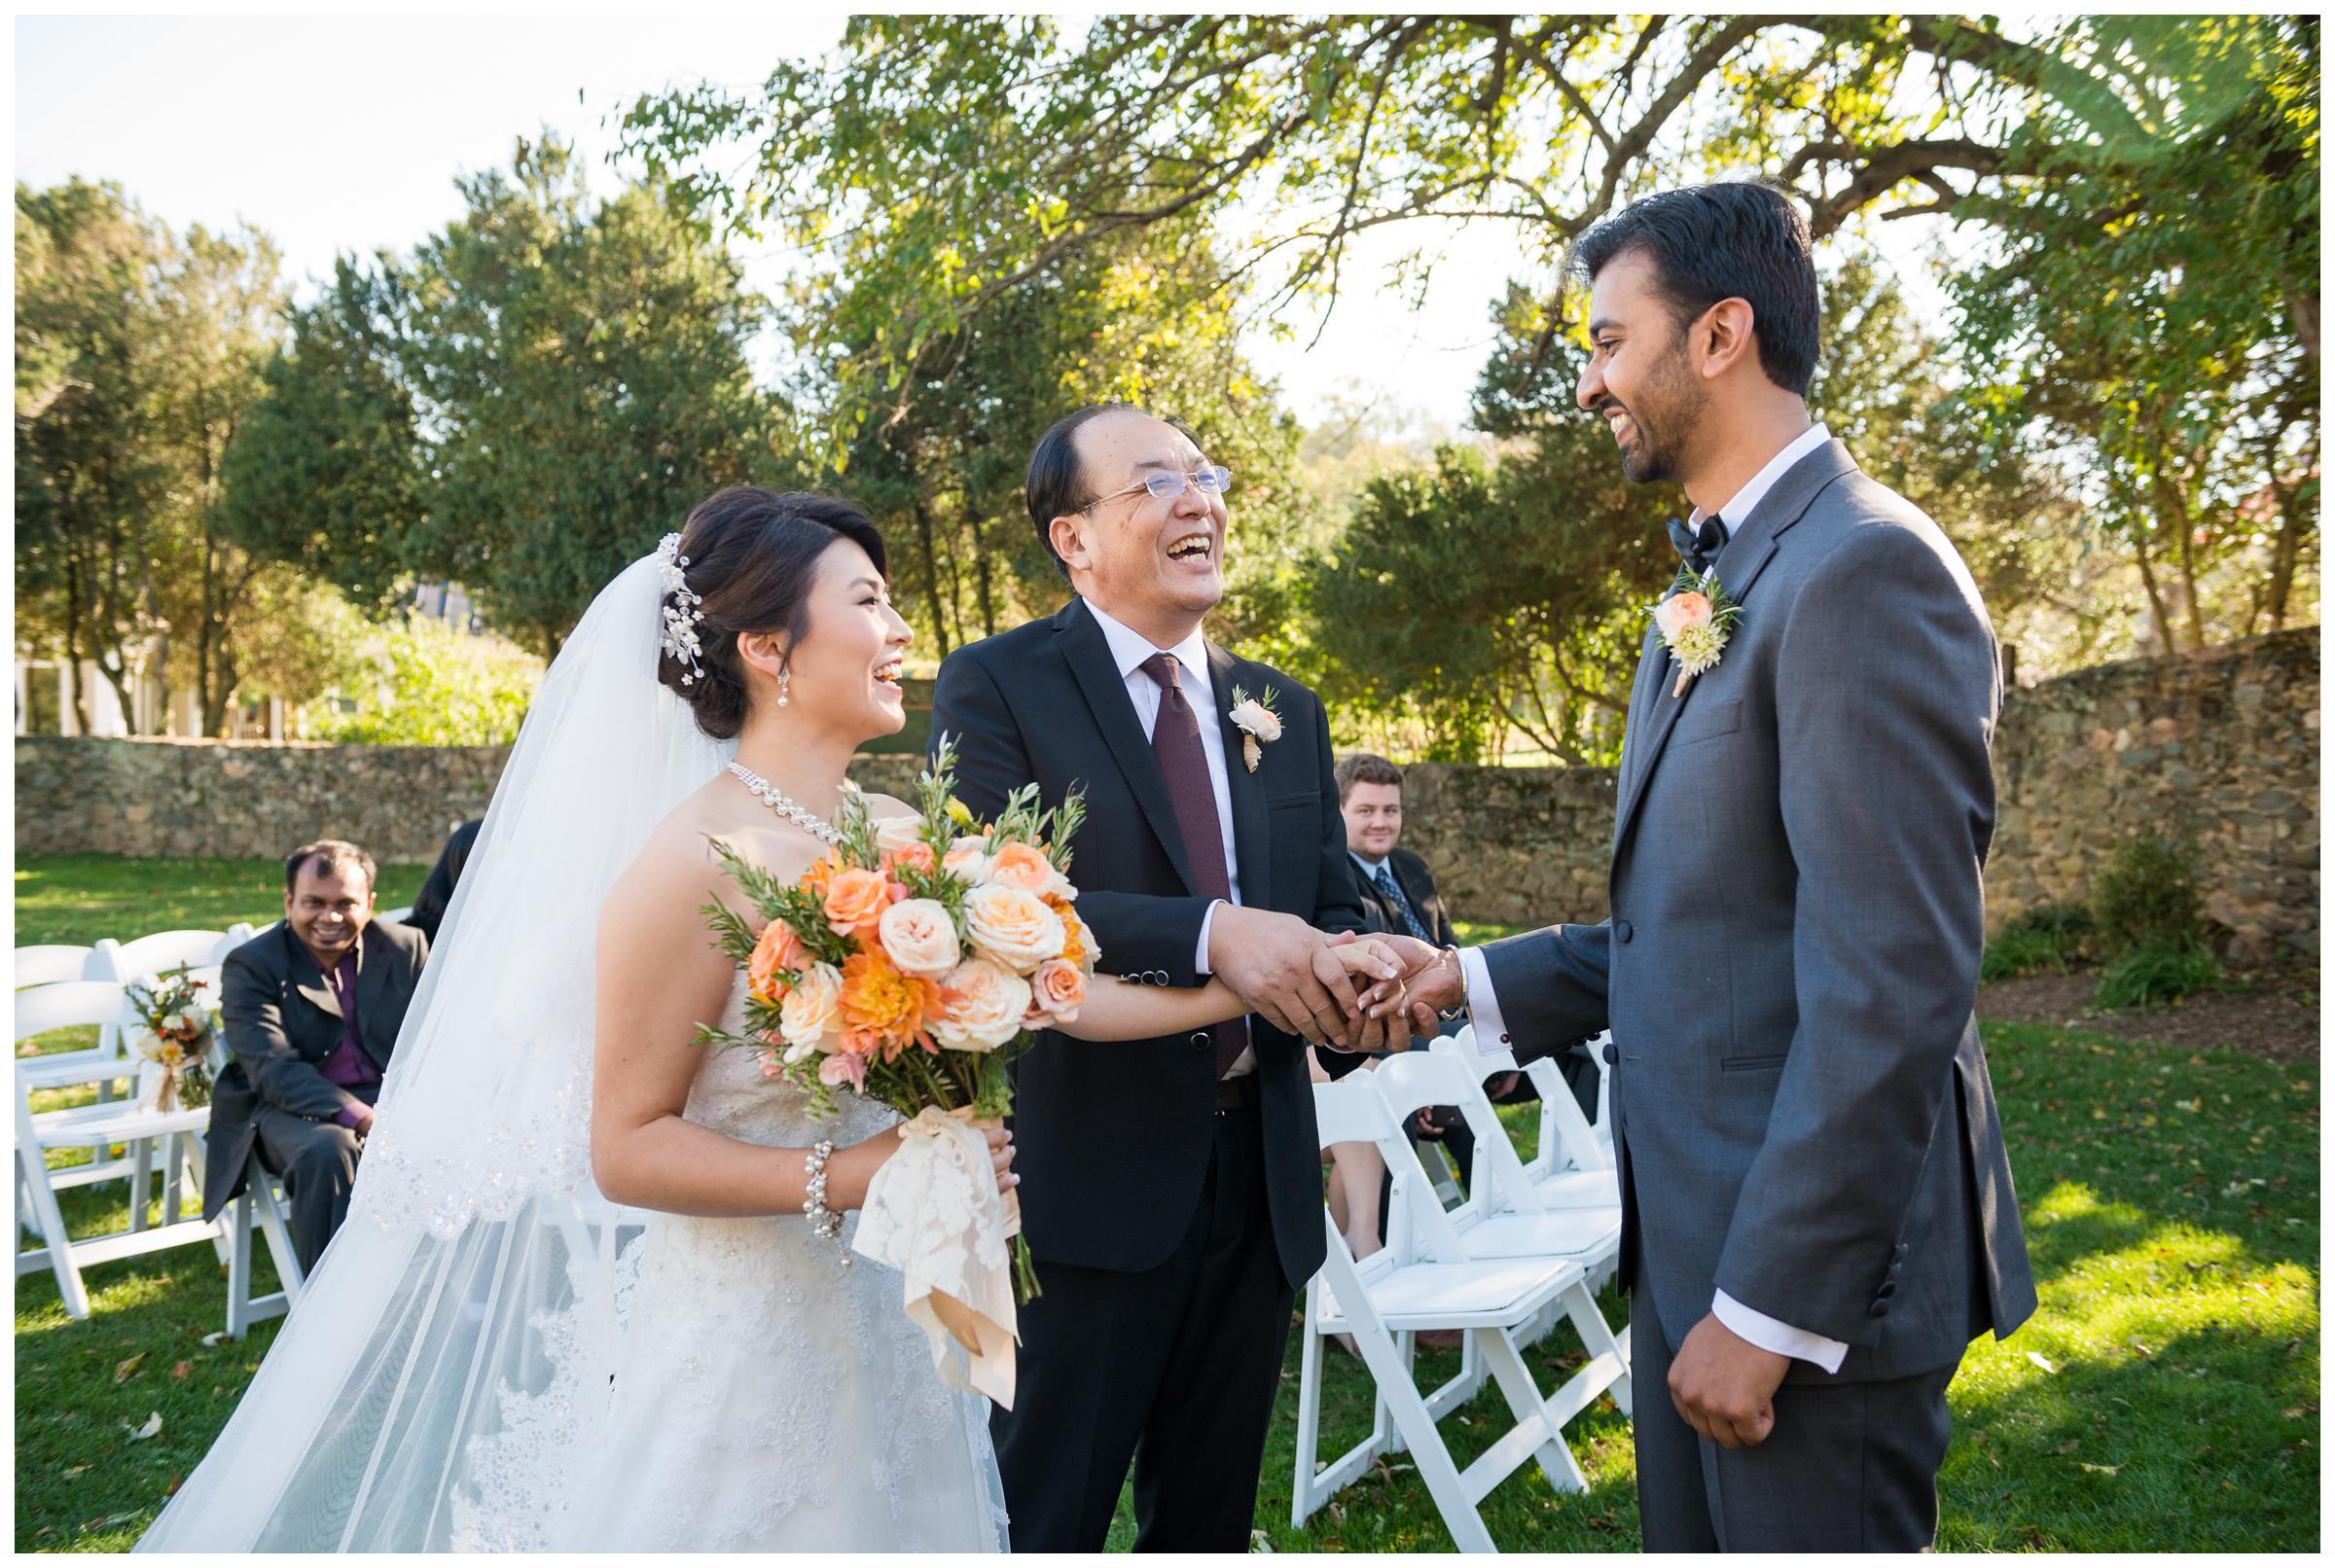 bride's father giving her away during wedding ceremony at Stoneleigh Golf Club in Virginia